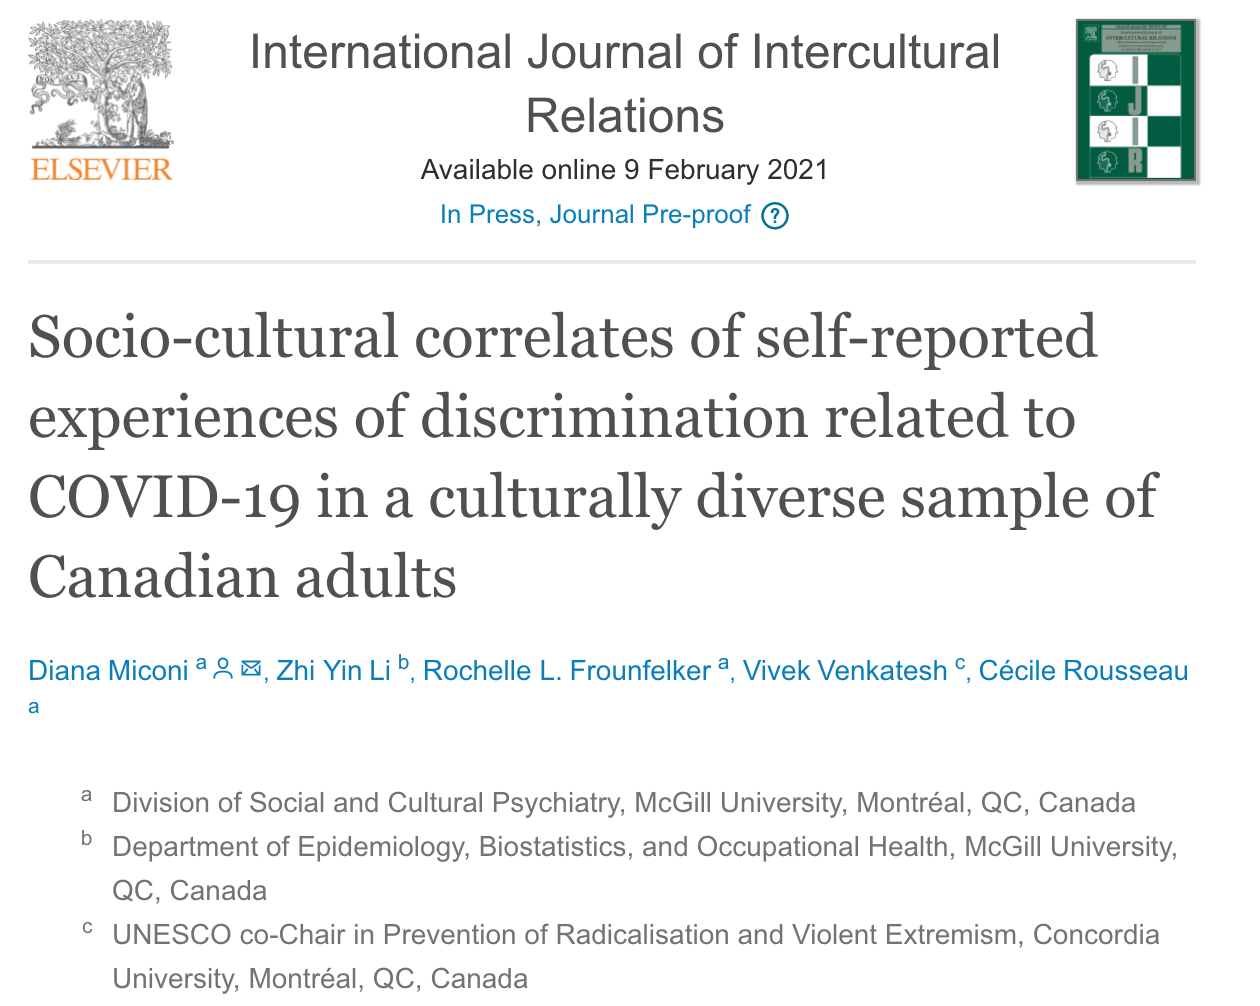 New Publication on Perceived Discrimination Experiences in Canadian Communities in a COVID-19 Context.